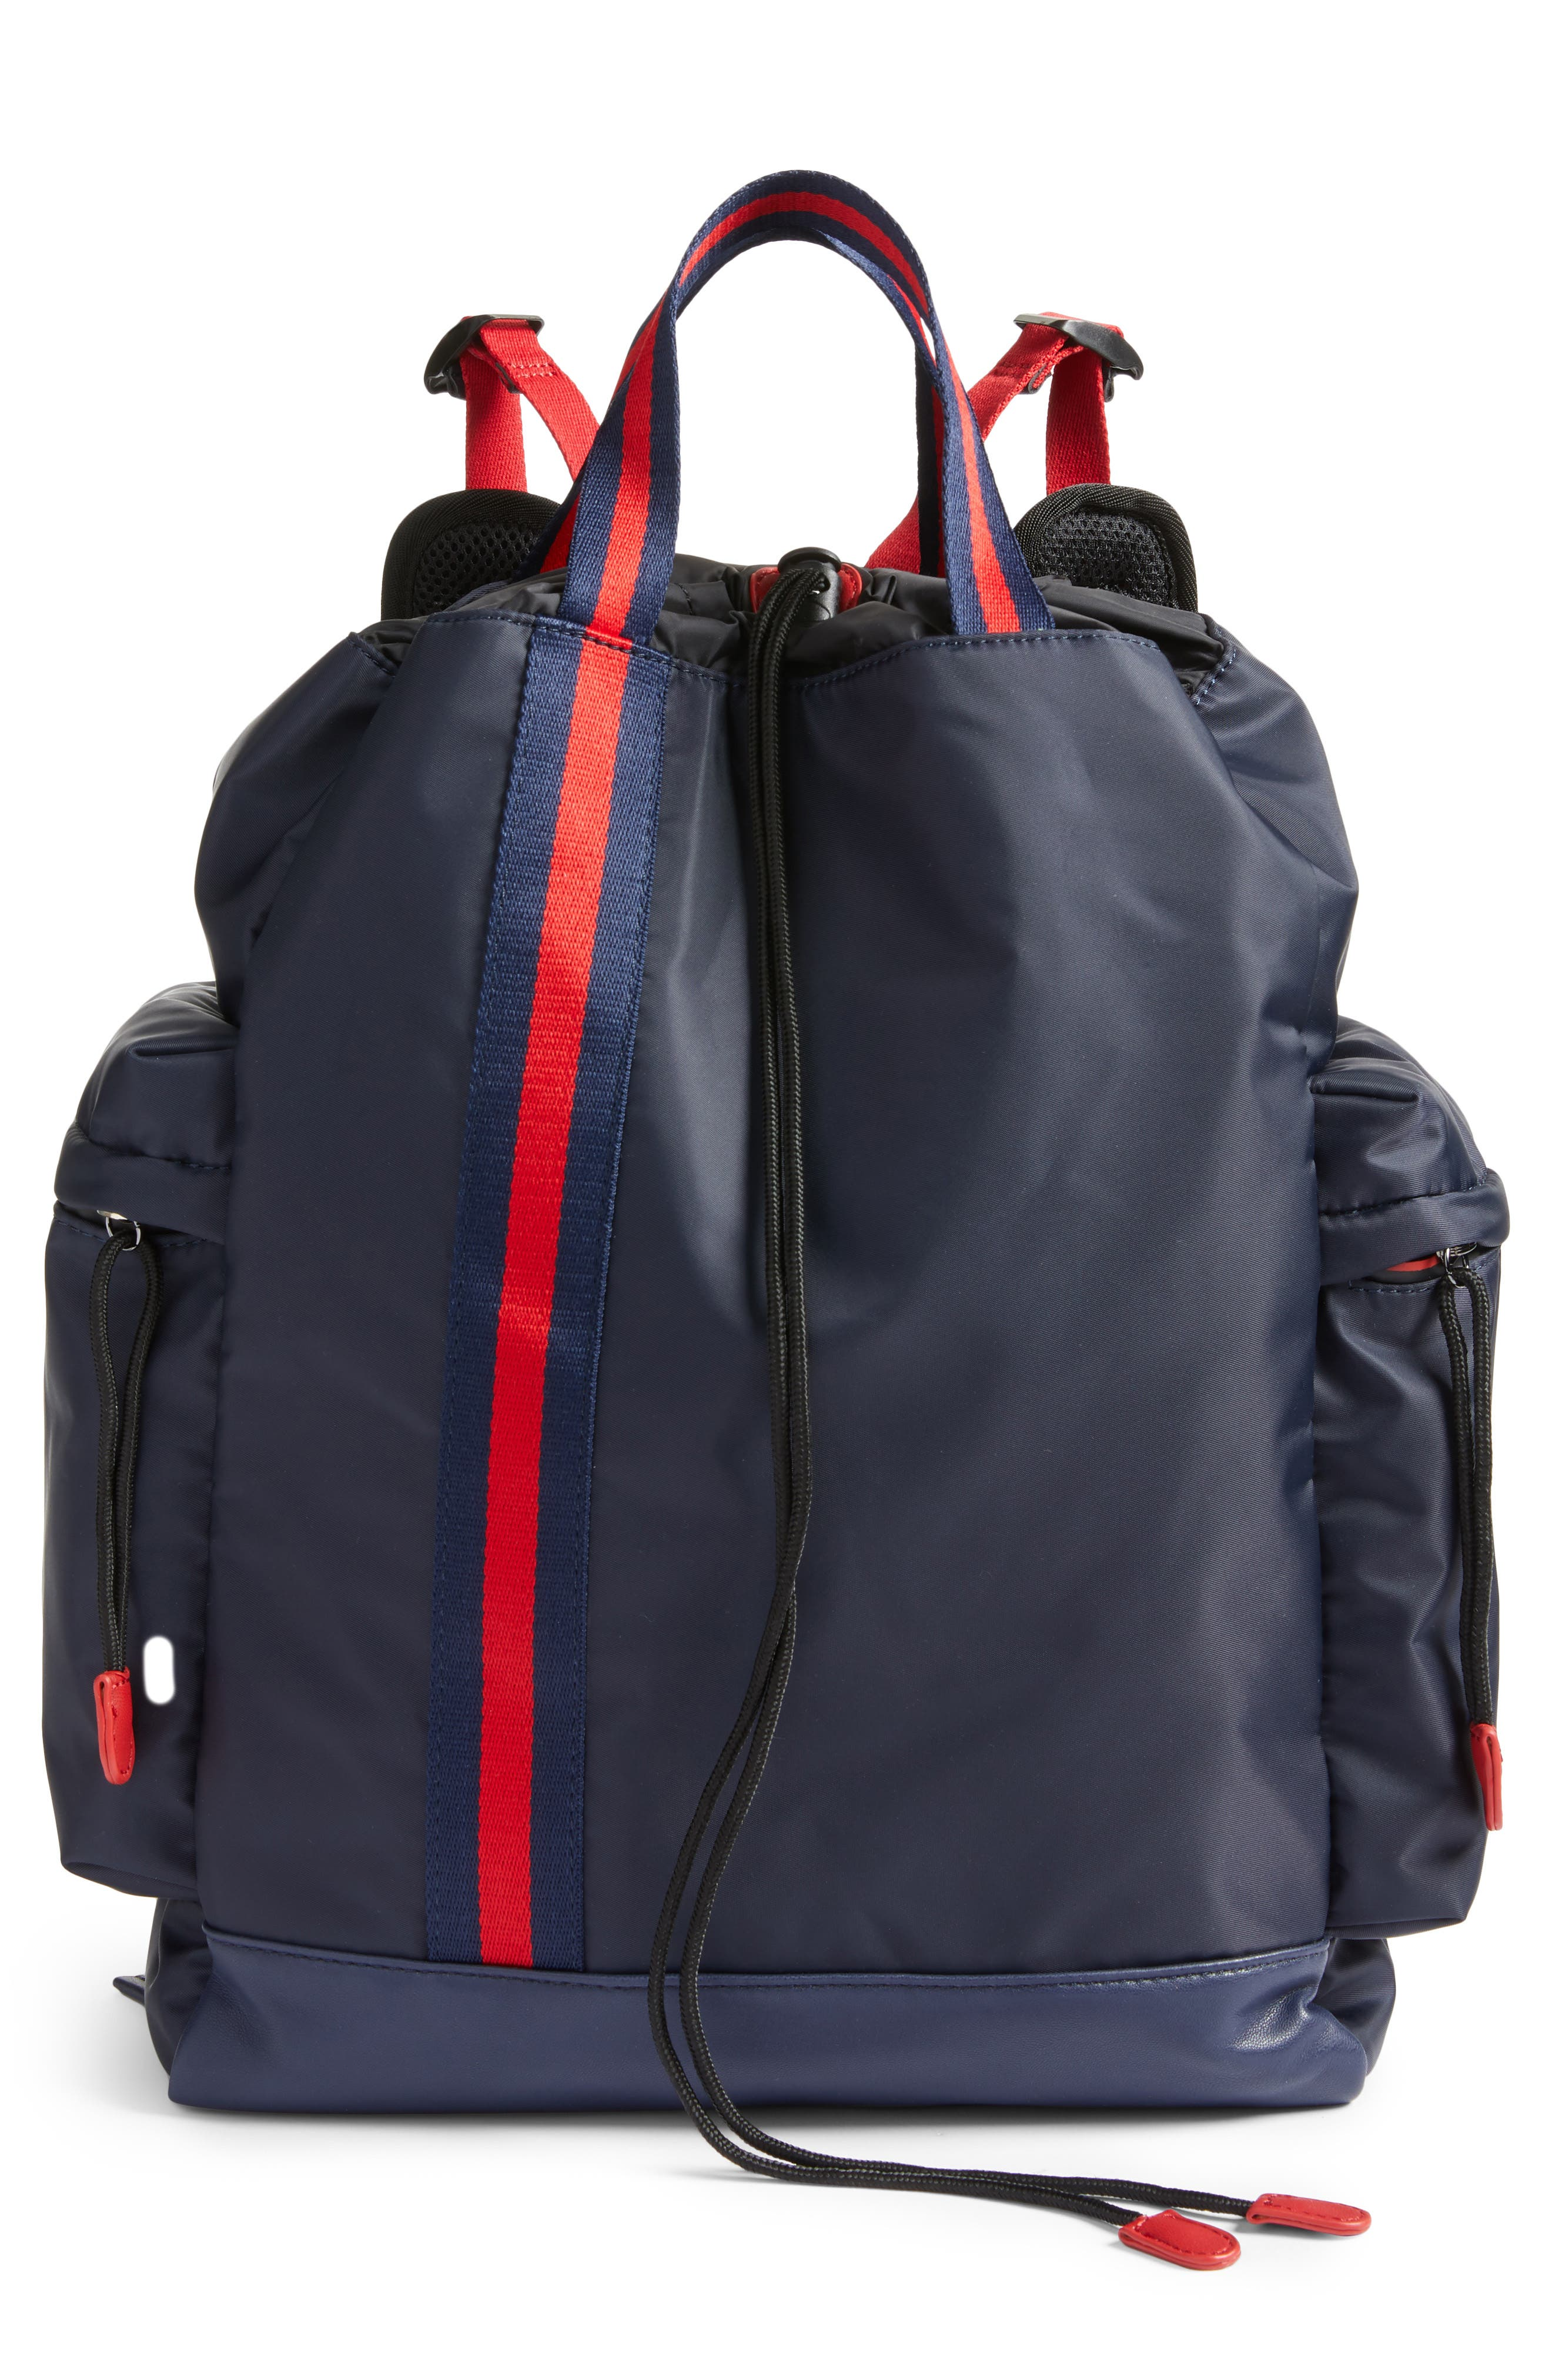 Yungg Stripe Strap Backpack,                             Main thumbnail 1, color,                             Navy/ Red